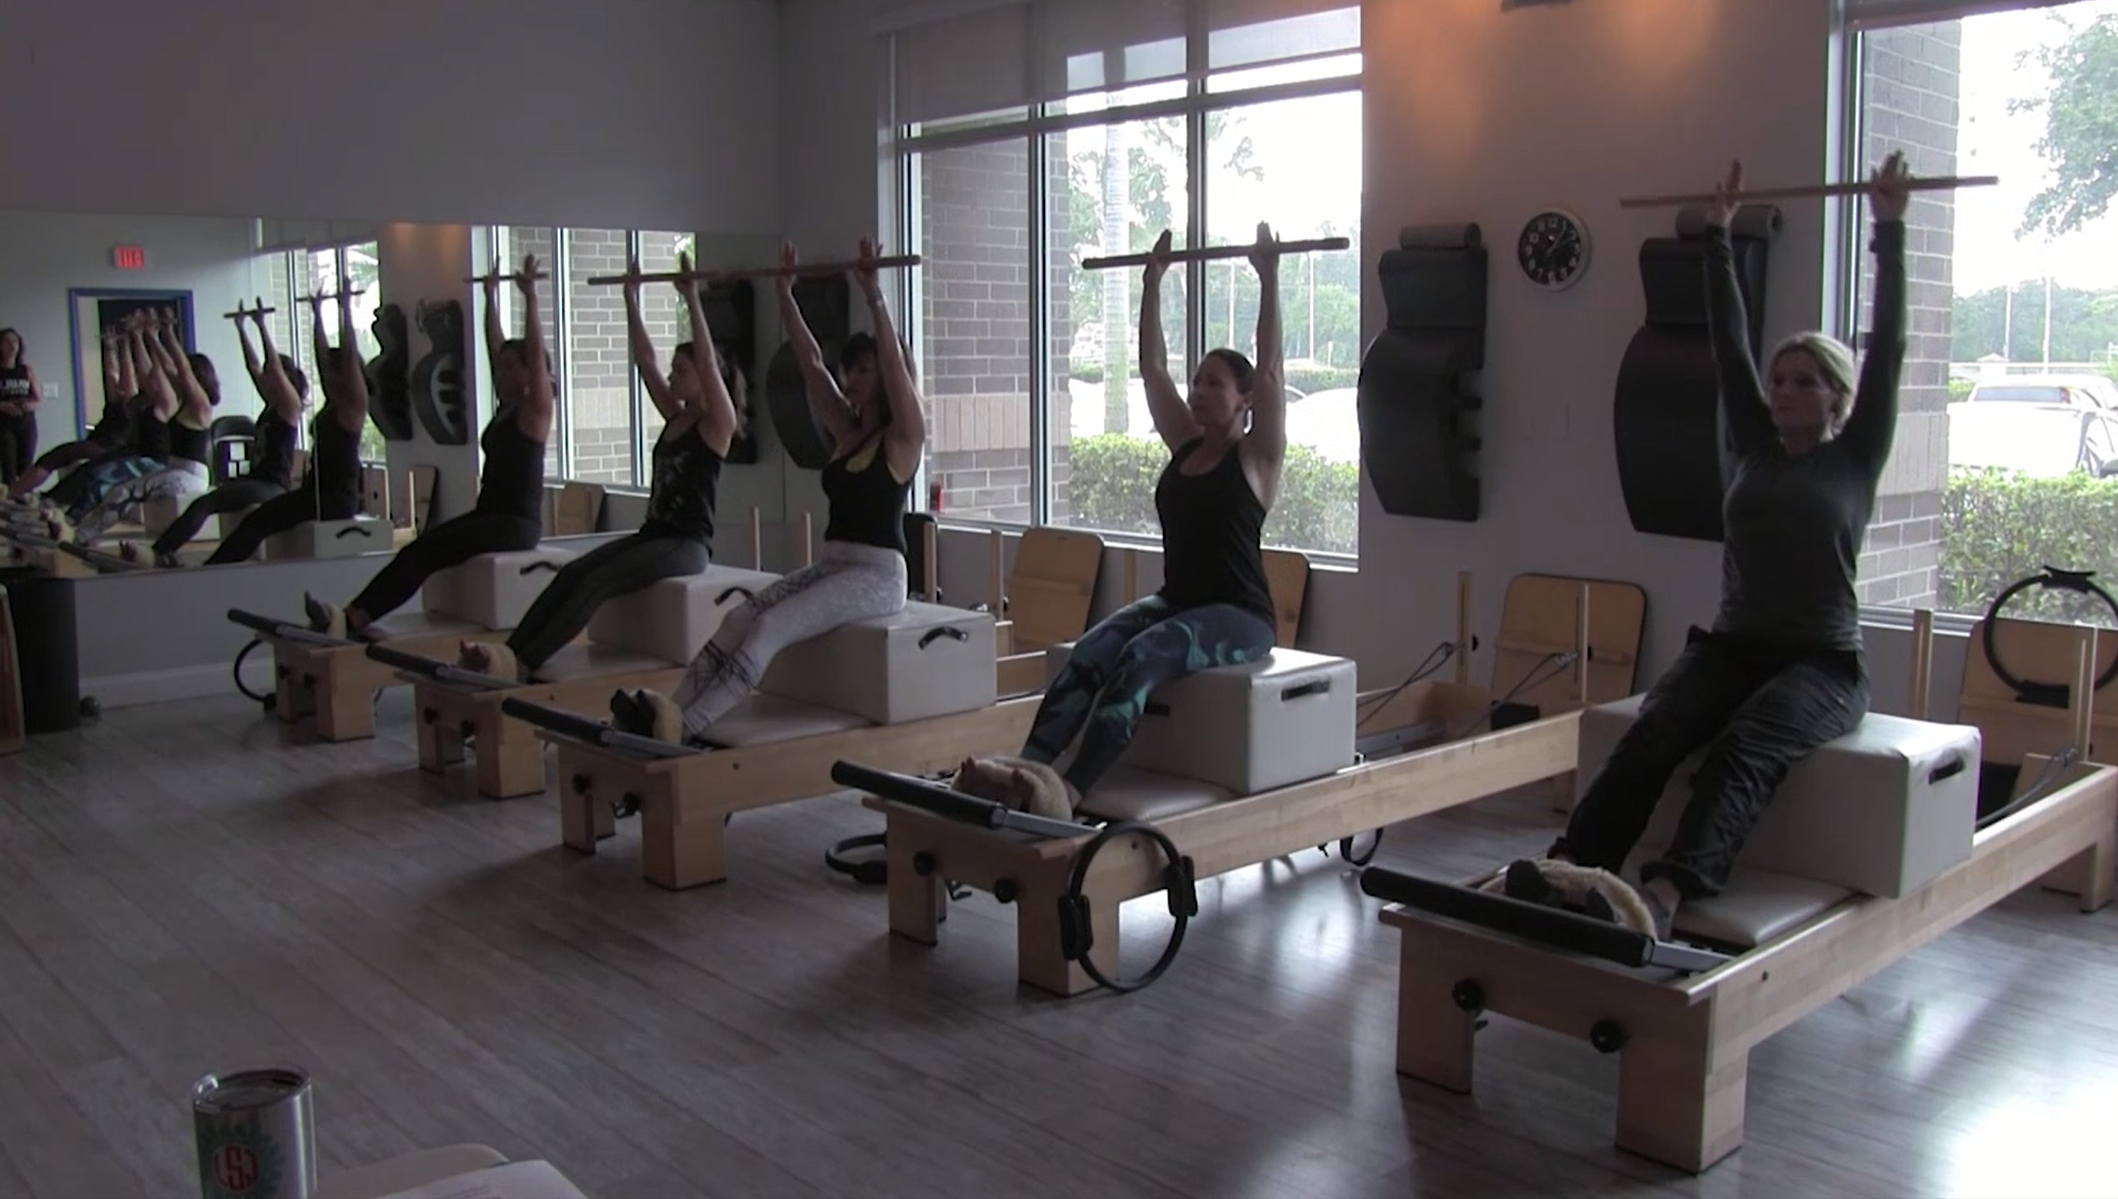 Non-Classical Reformer Variations Workout